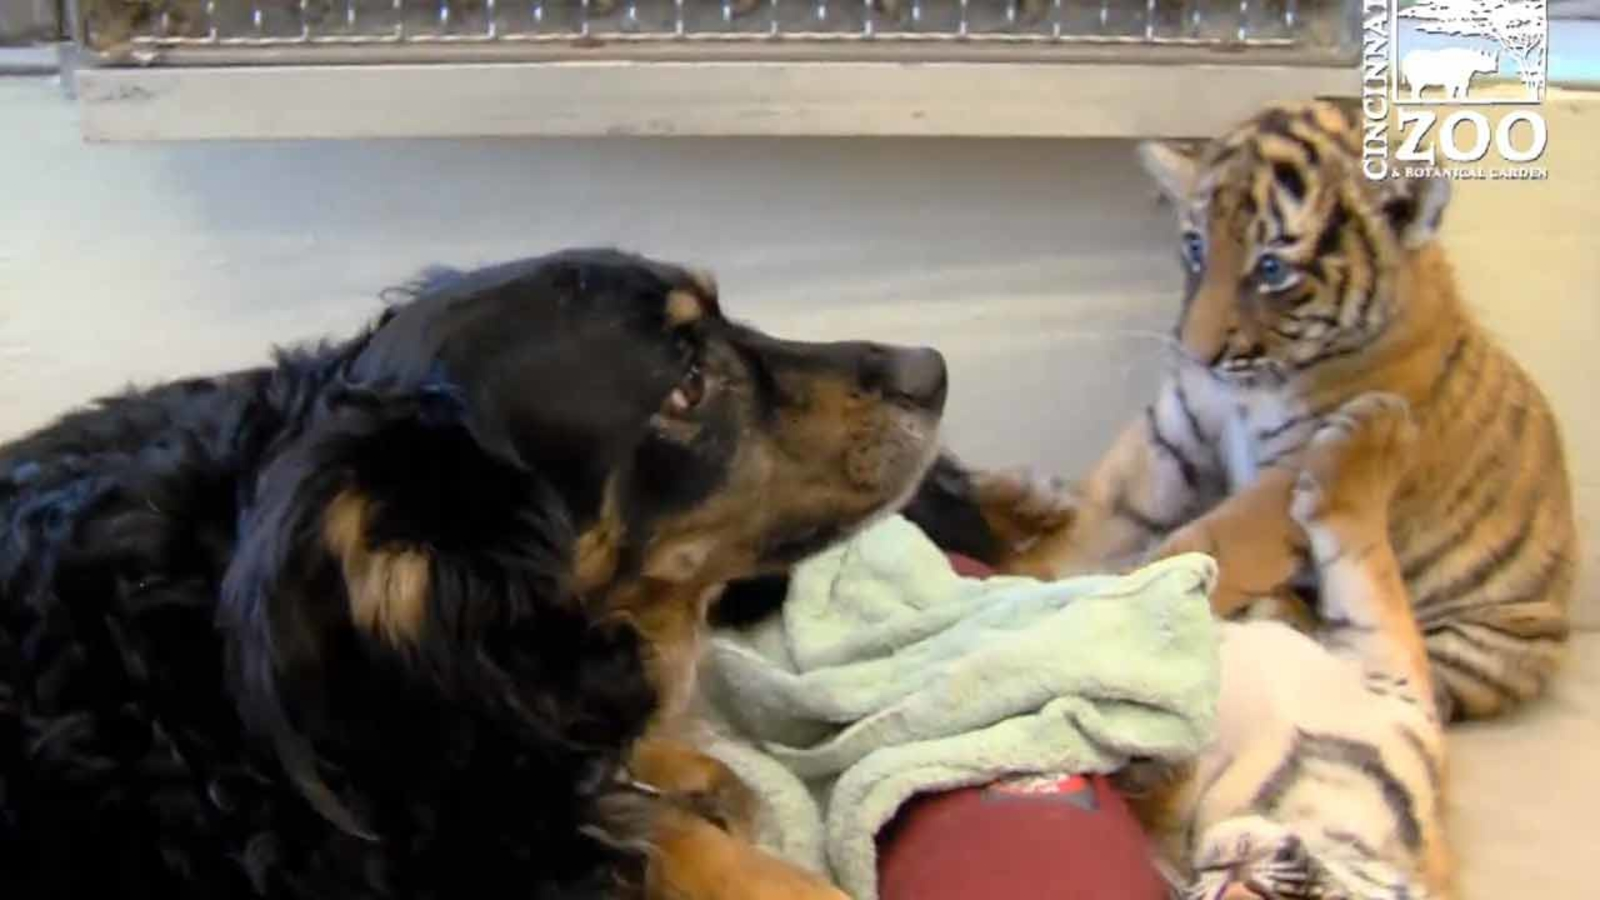 Nanny dog watches over cubs at Cincinnati Zoo - ABC13 Houston